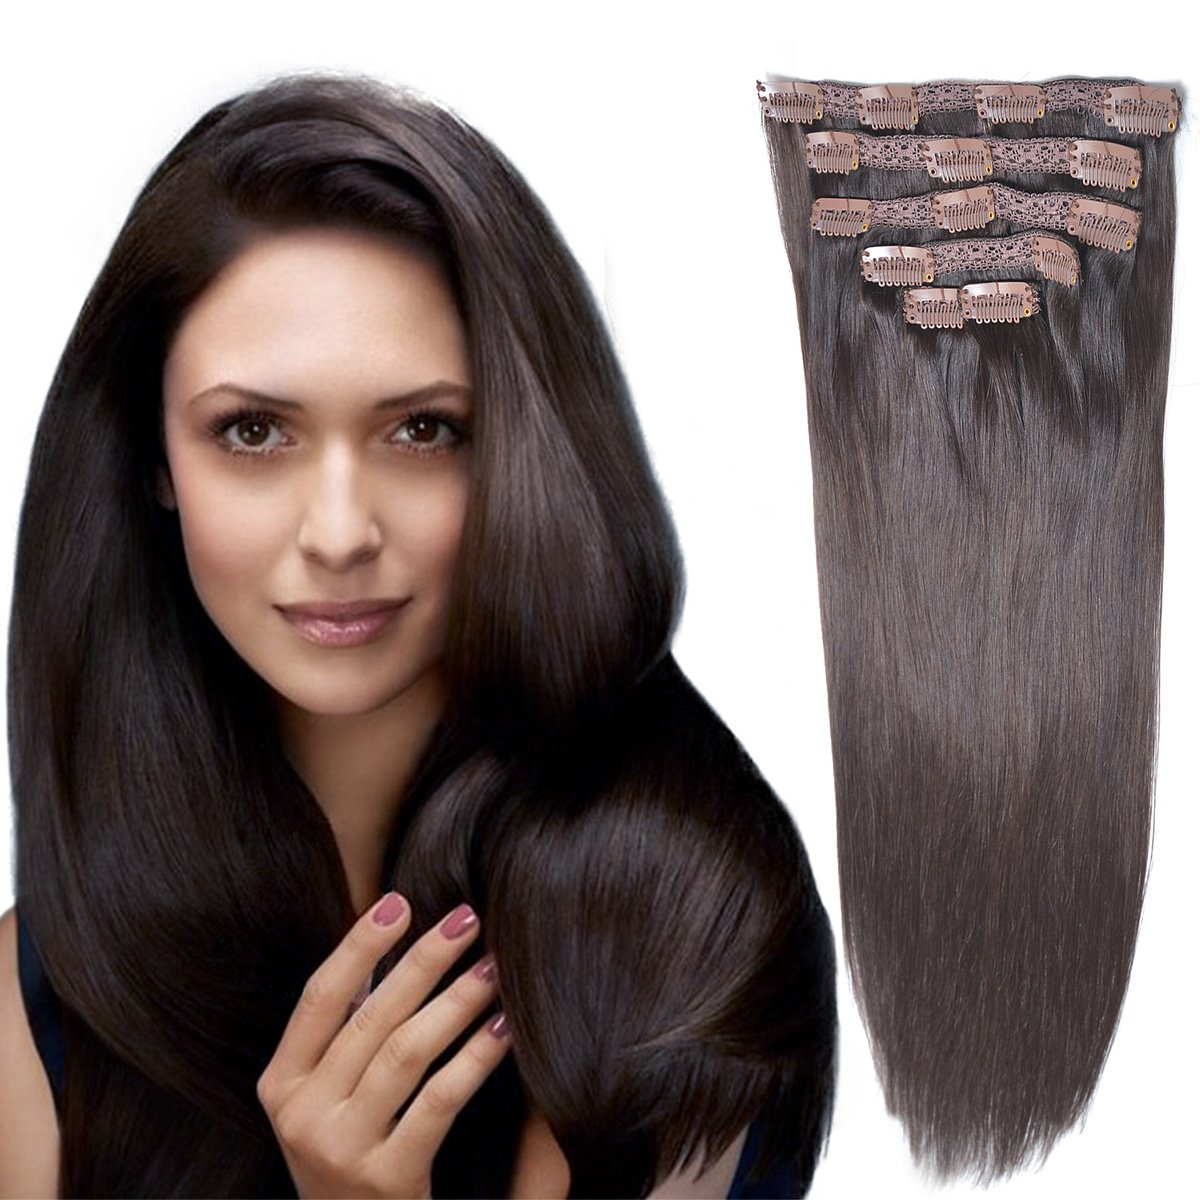 18''Clip in Remy Human Hair Extensionsdouble Weft Thick to Ends Dark Brown(#2) 6pieces 70Grams/2.45oz by BHF HAIR